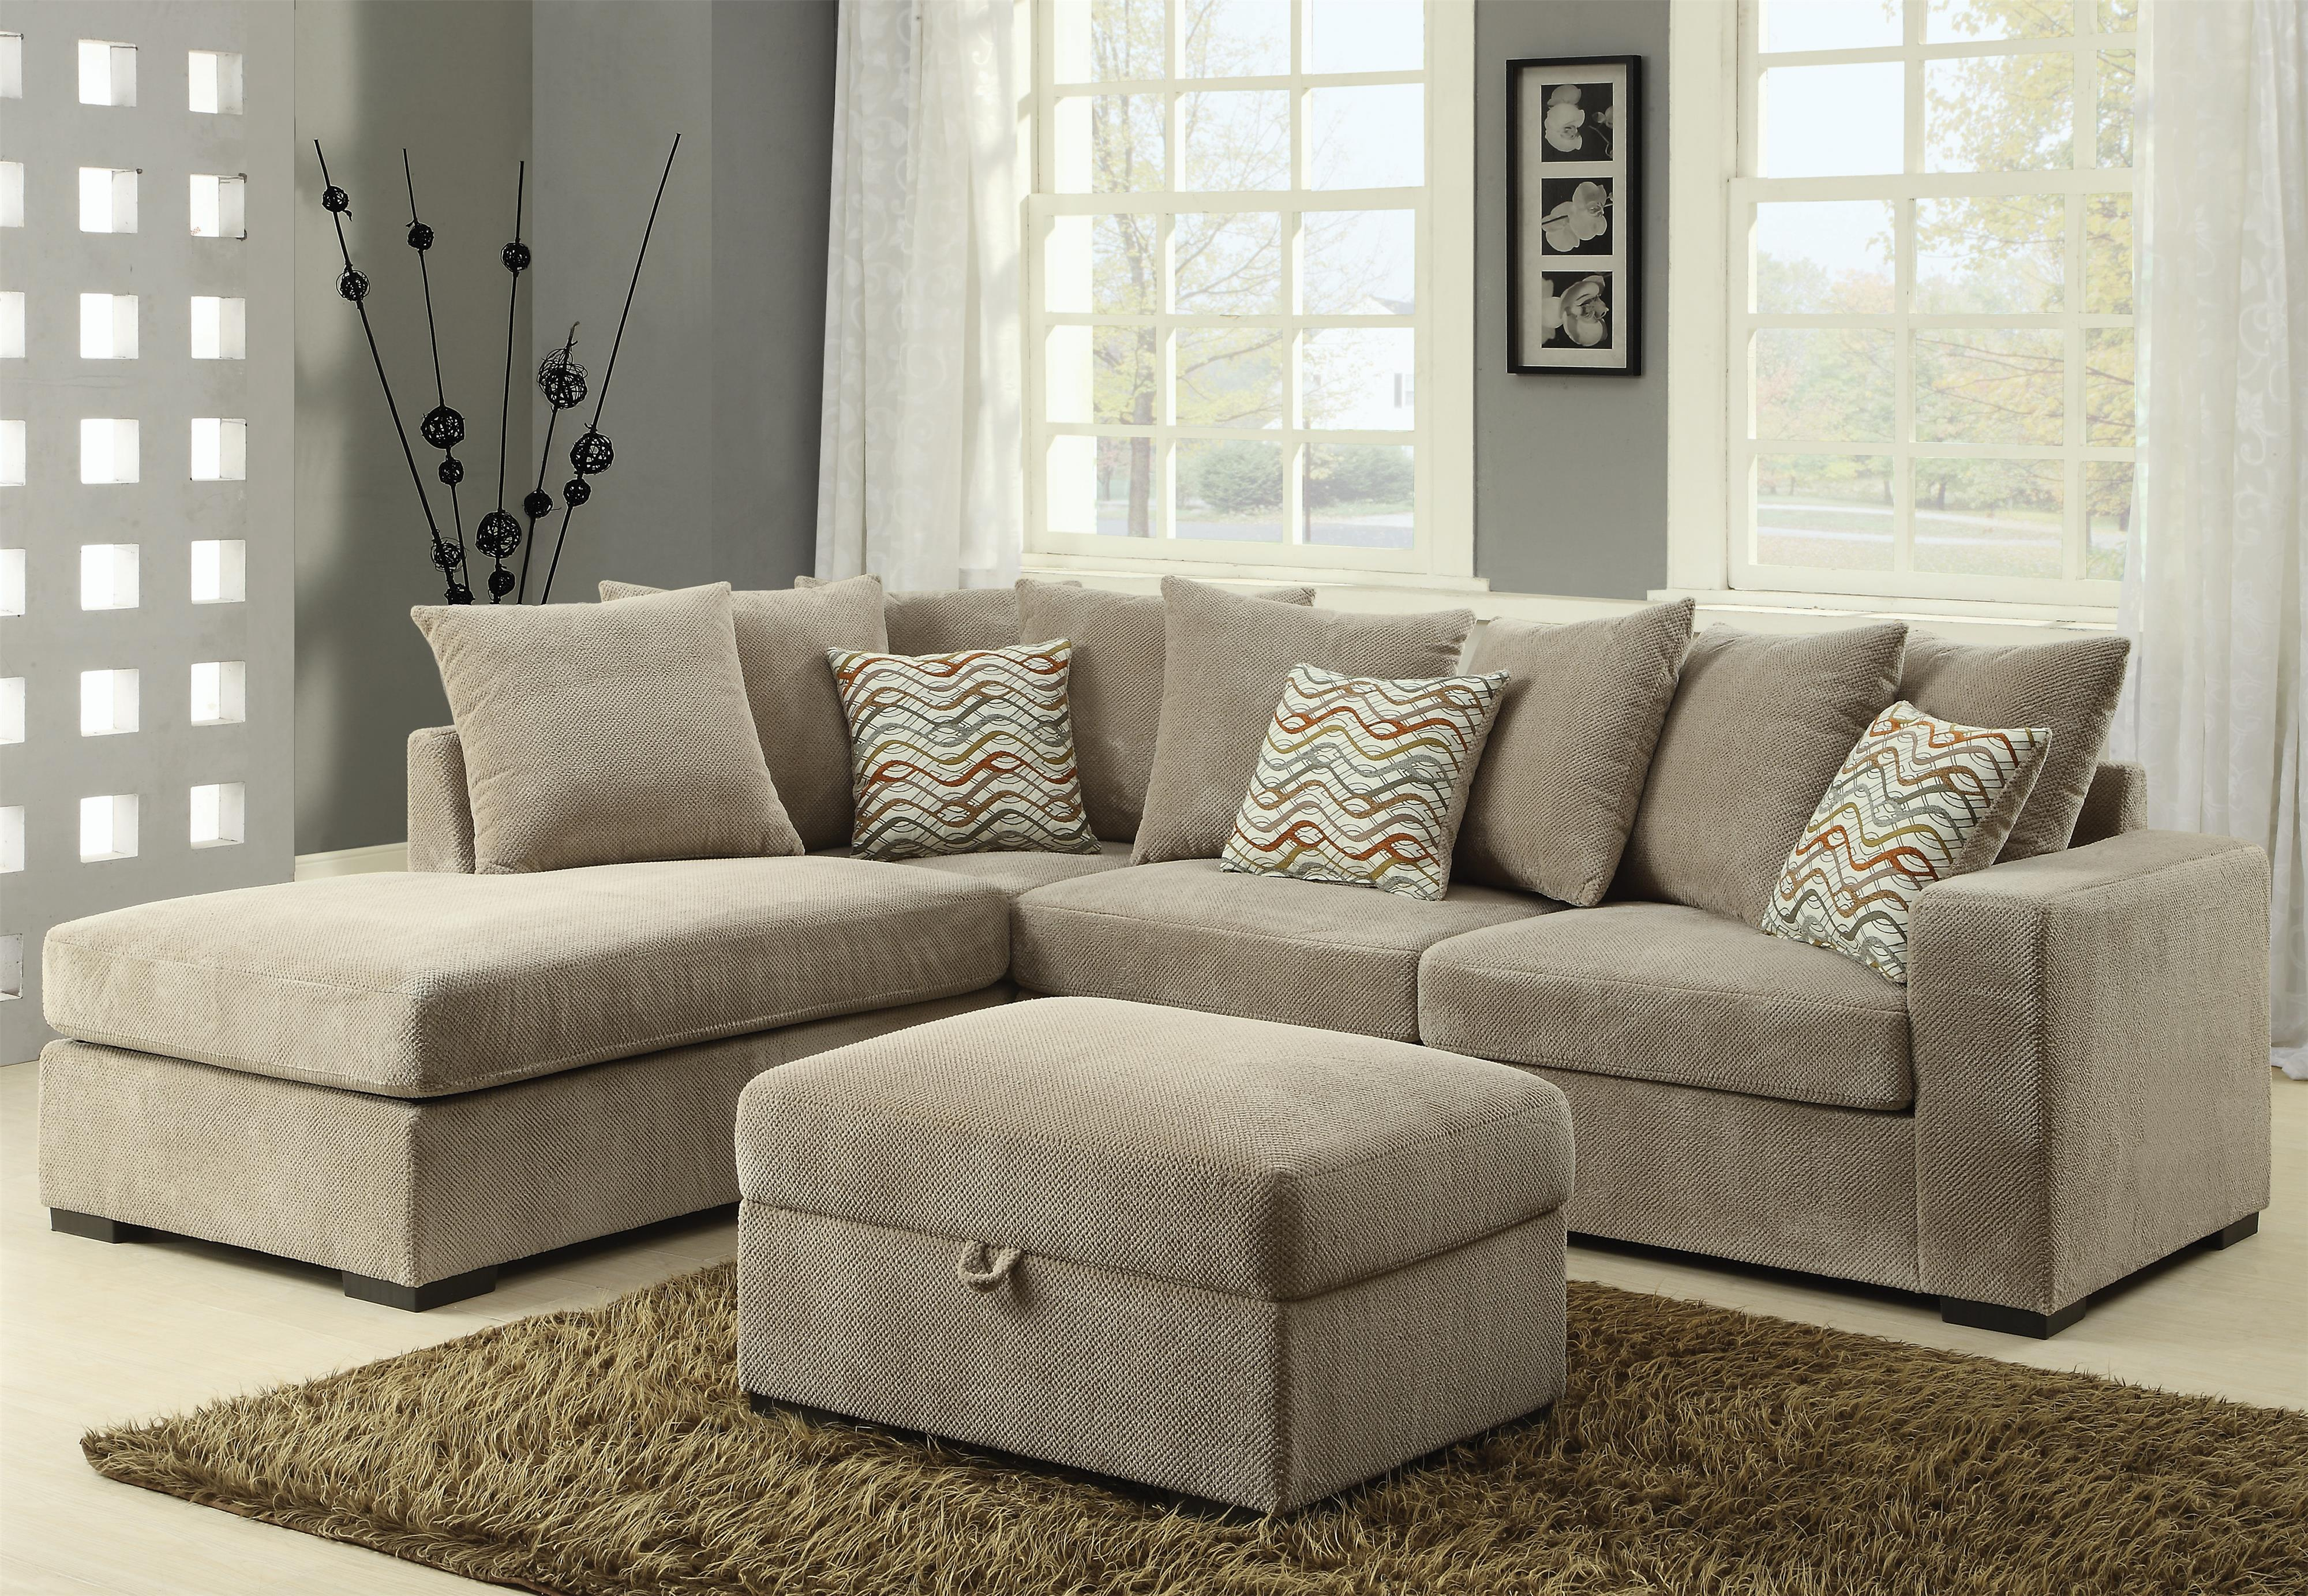 Coaster Olson Sectional - Item Number 500044 : reversible chaise sectional sofa - Sectionals, Sofas & Couches